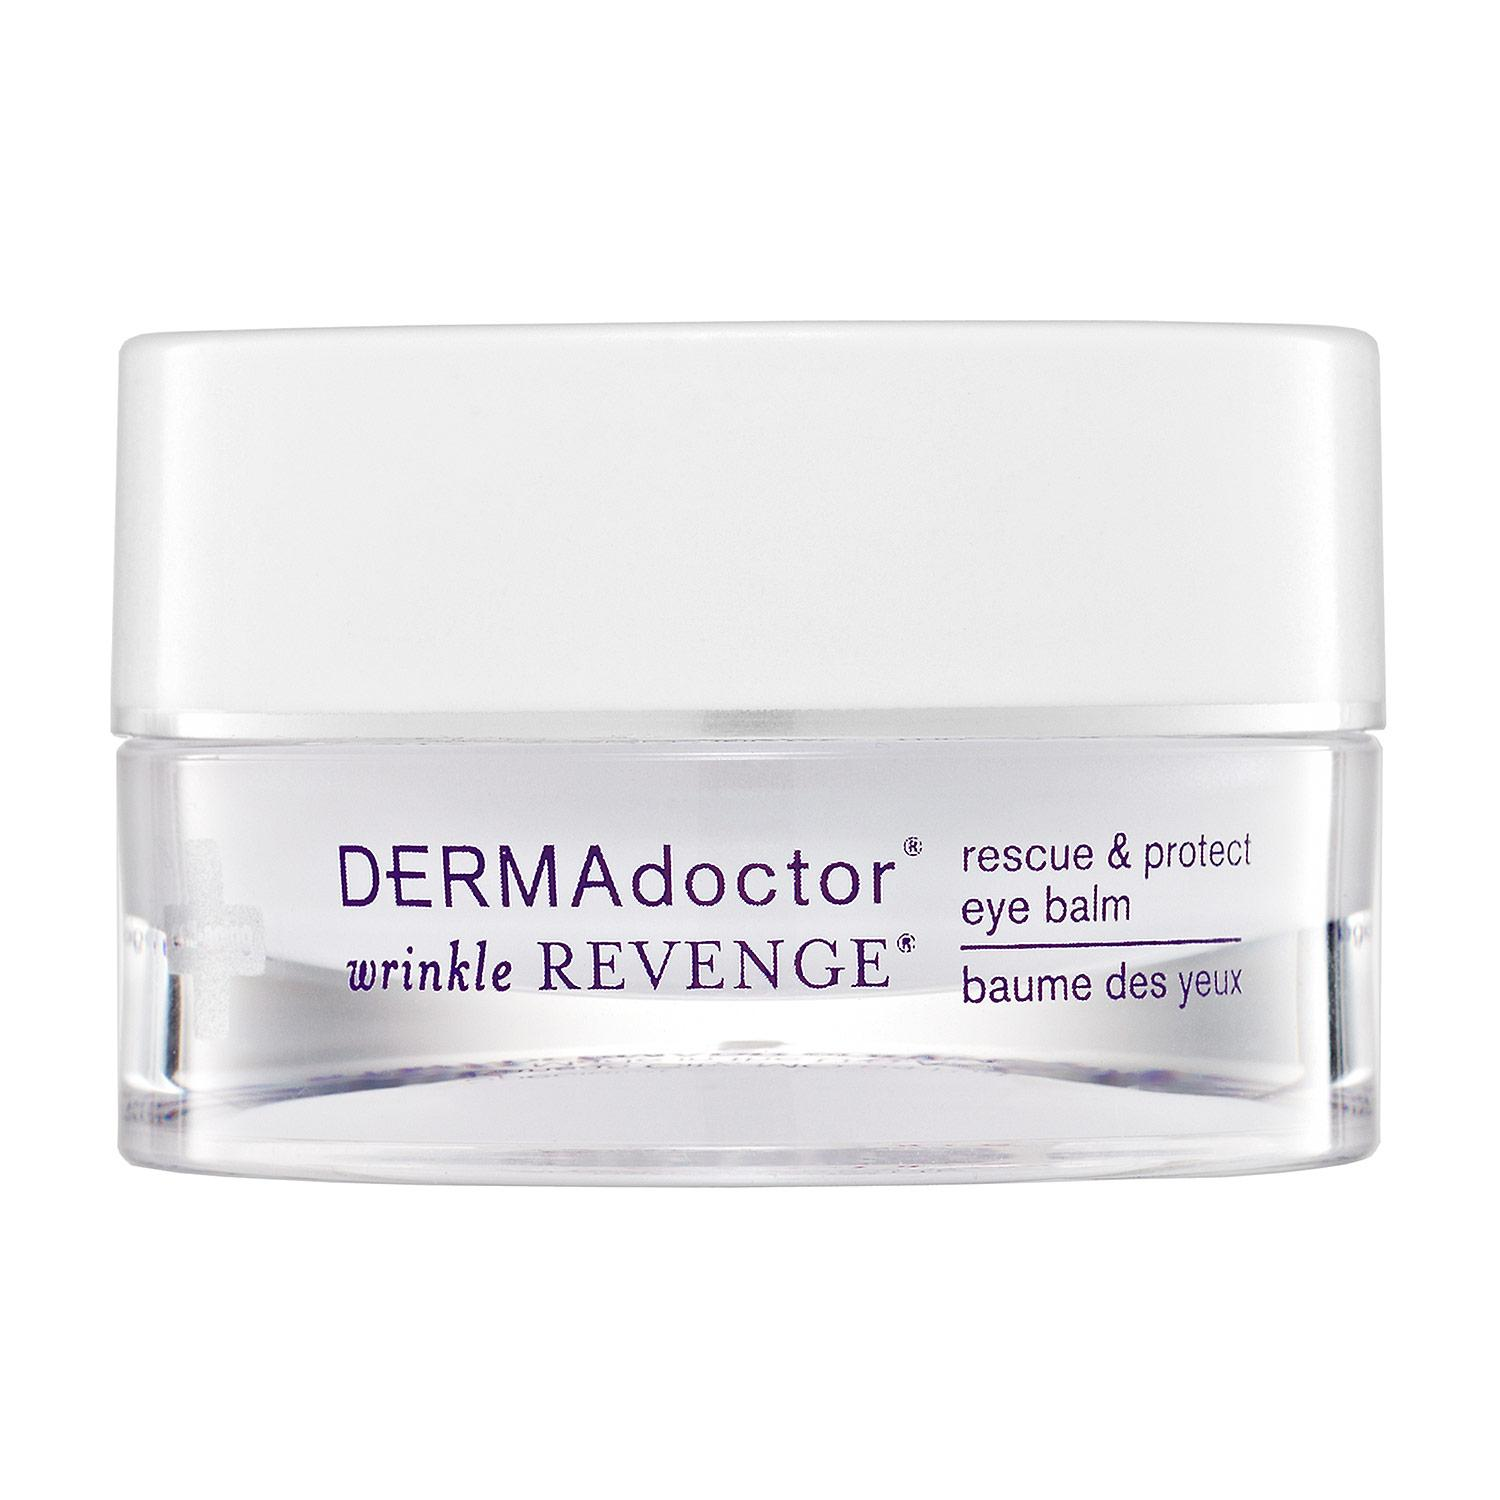 Wrinkle Revenge Rescue & Protect Eye Balm